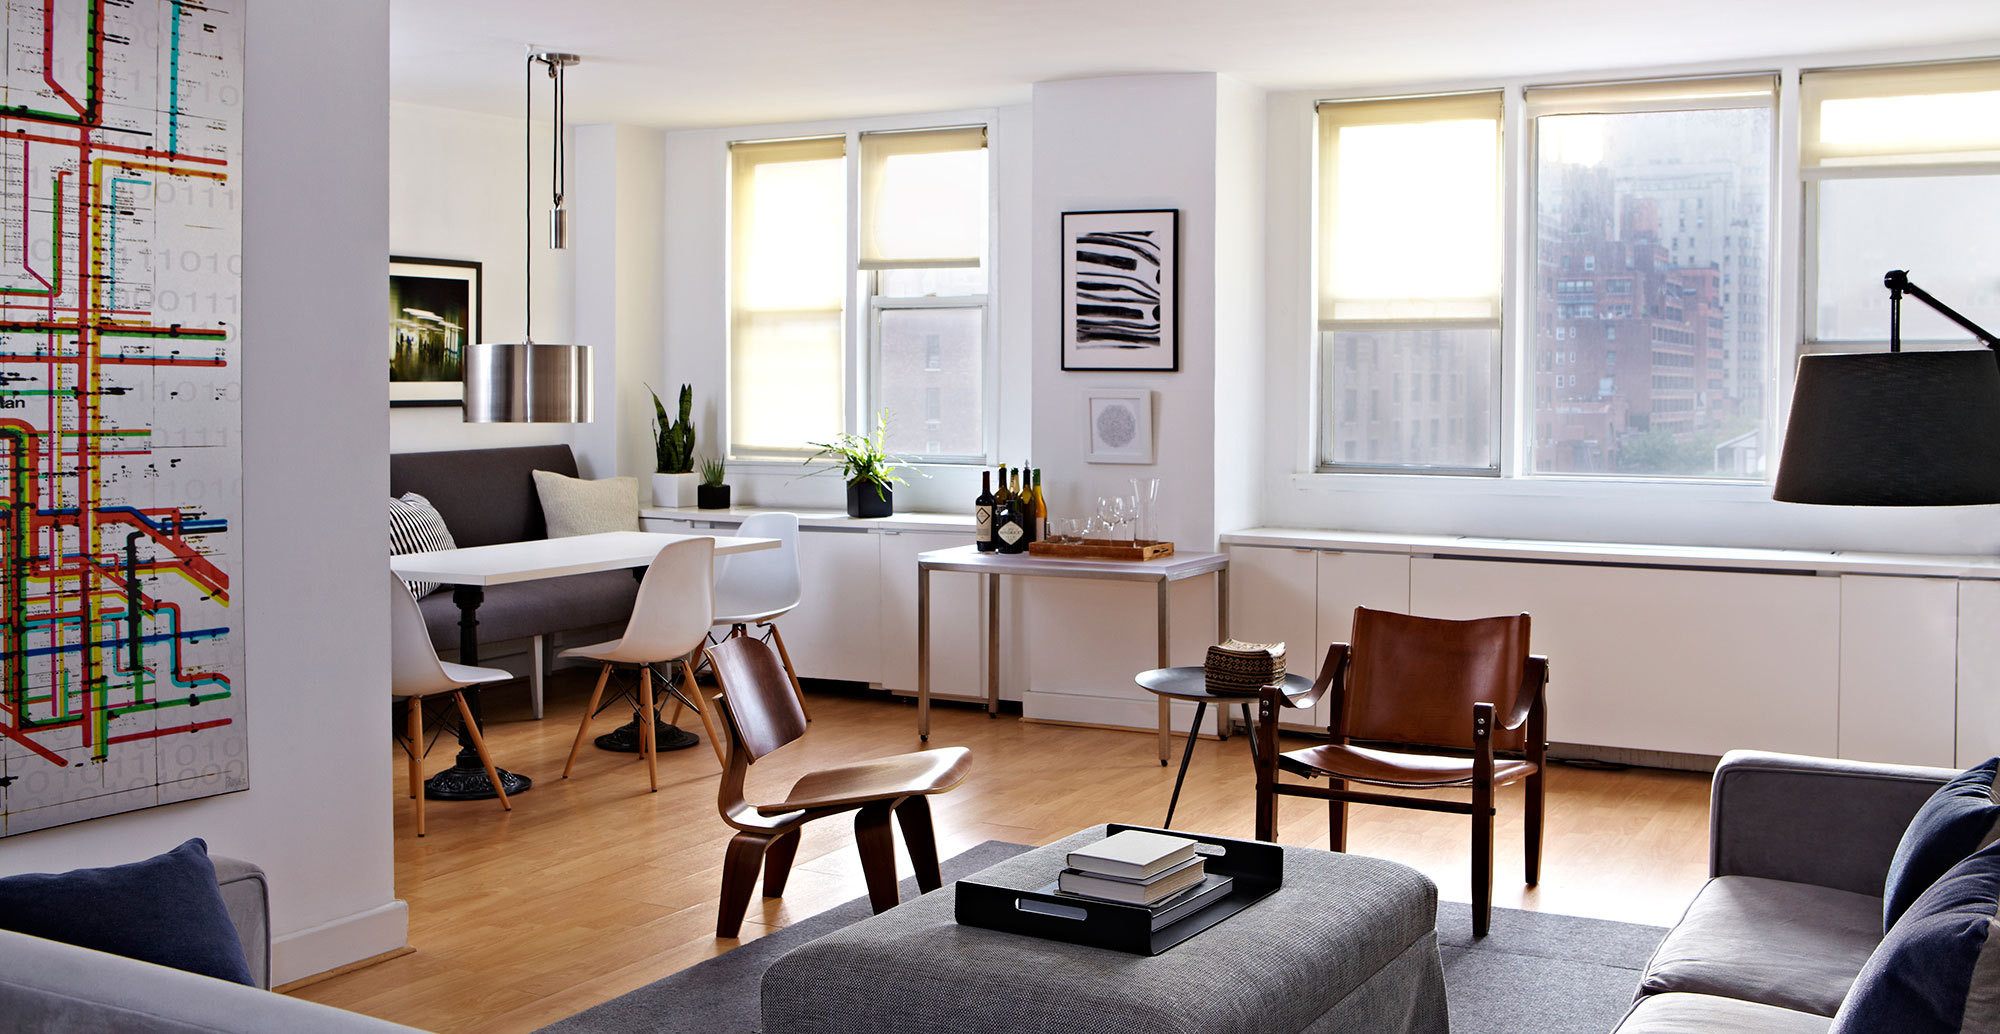 An inviting new york city bachelor pad home tour lonny - A loft apartment bachelor pad ...